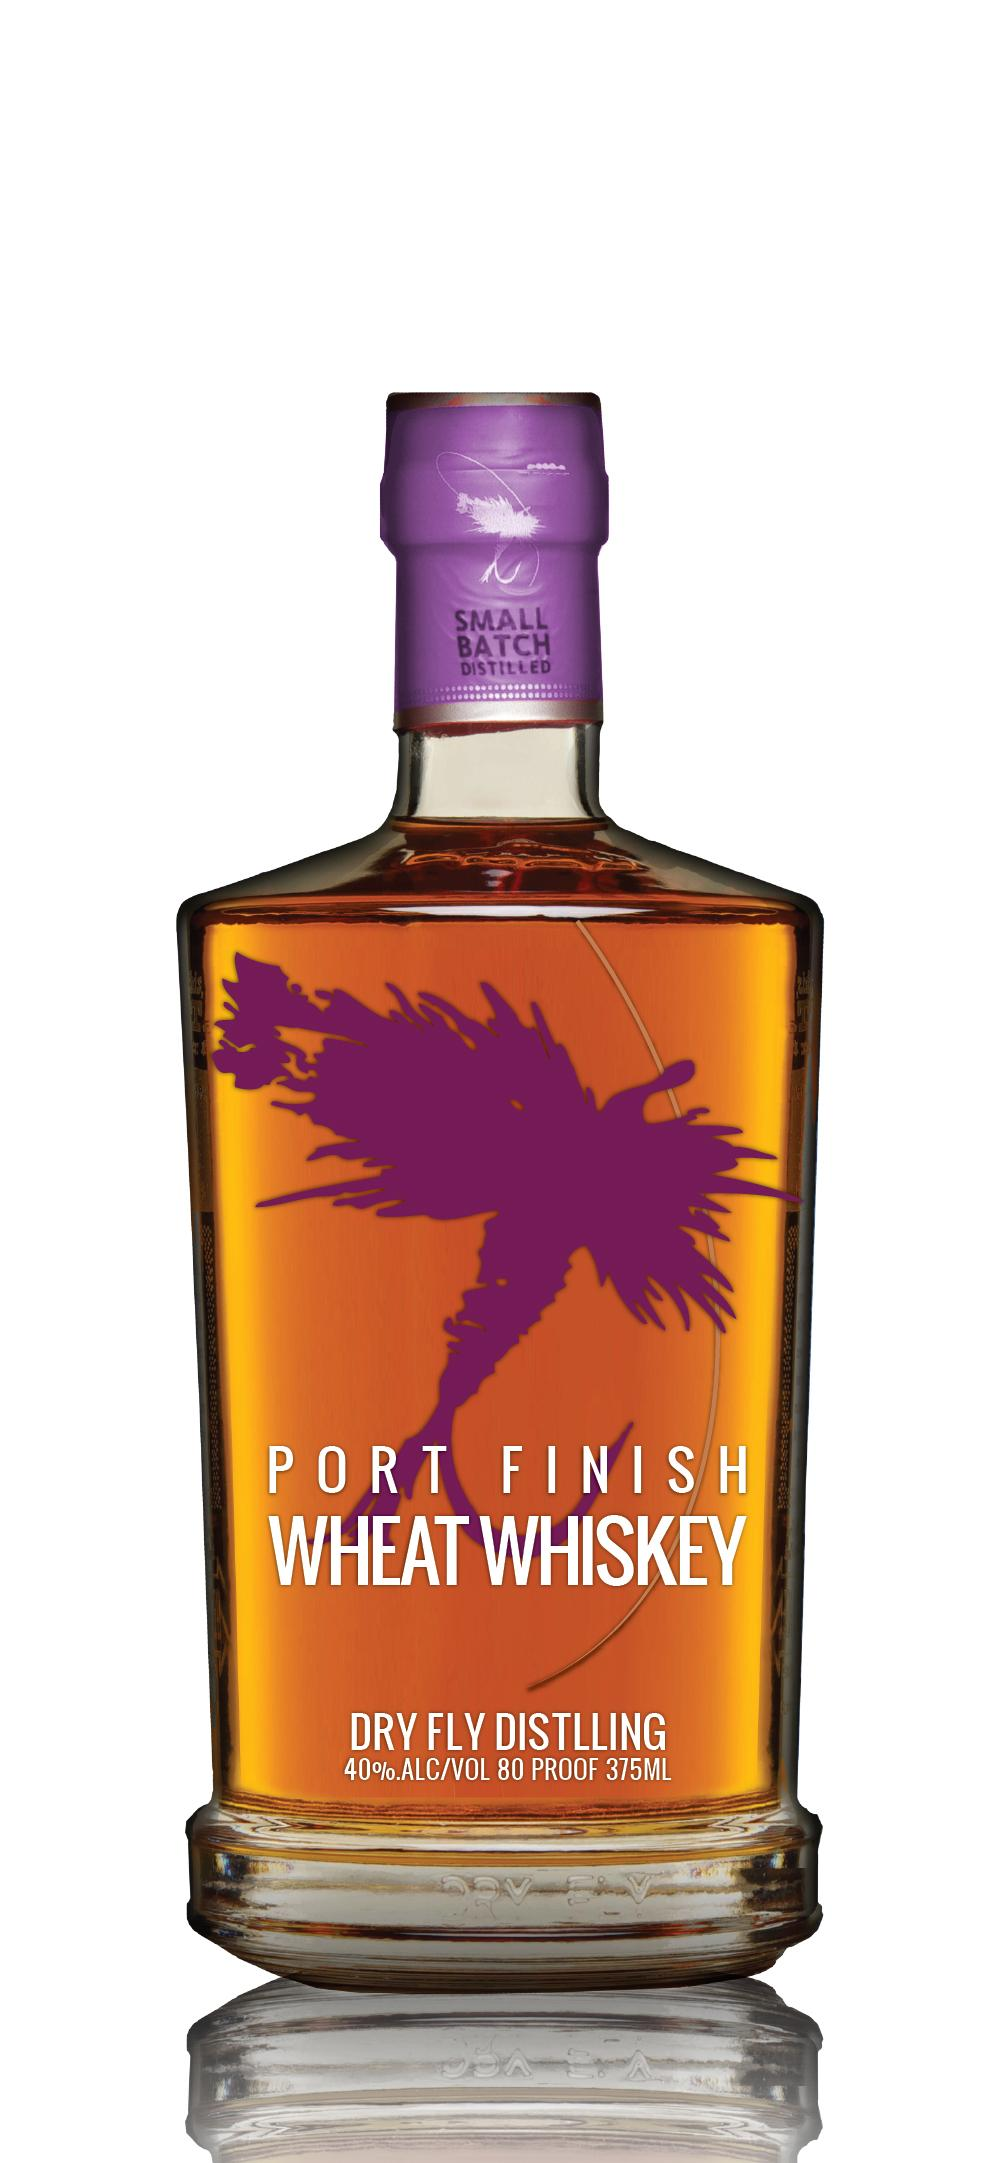 1st Place: Dry Fly Distilling Port Finish Wheat Whiskey. (Image: Sip Northwest)